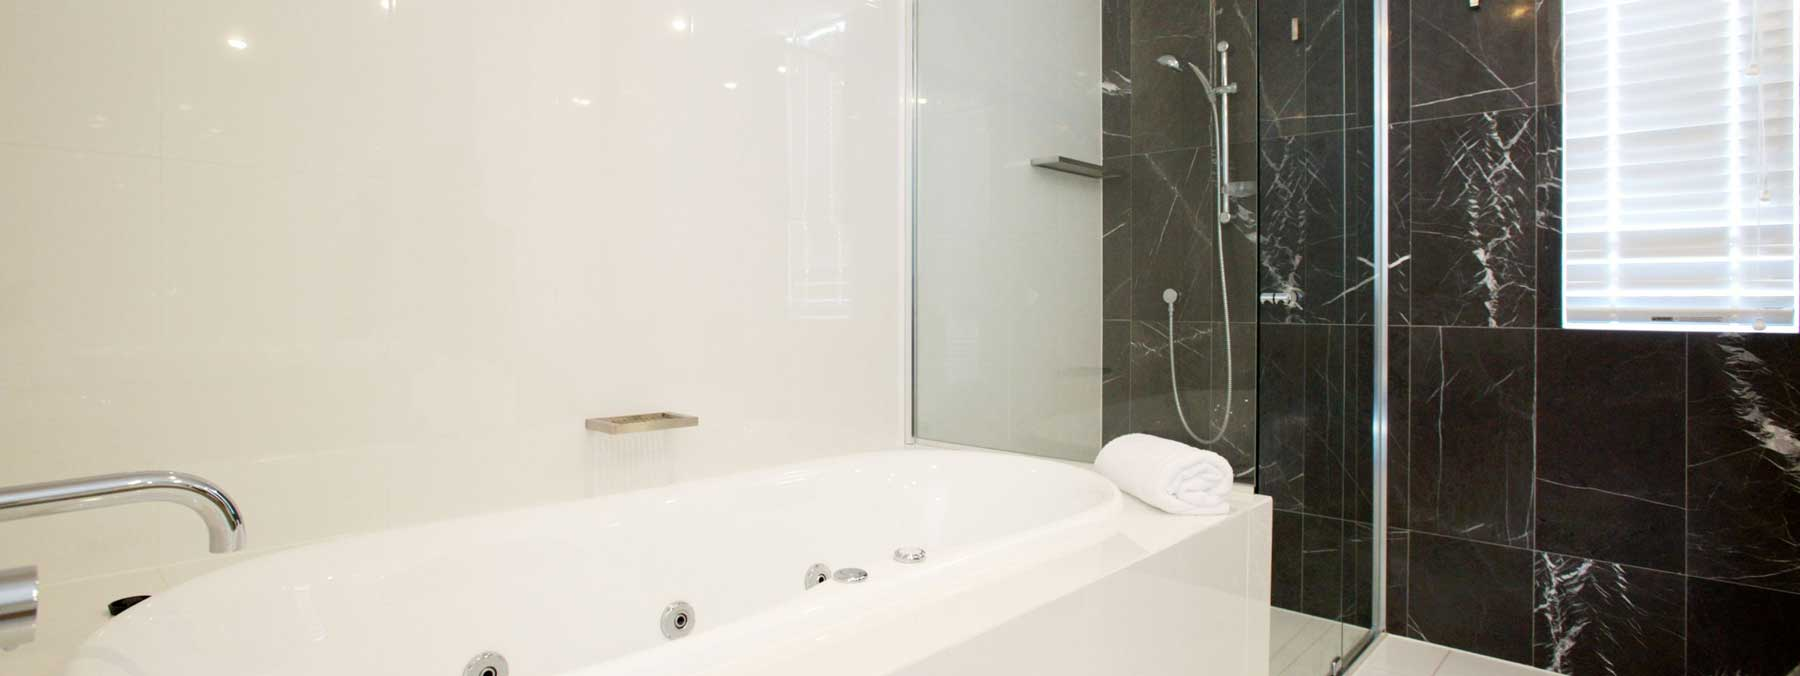 Bathroom renovations sydney custom bathrooms designs ideas for Complete bathroom renovations